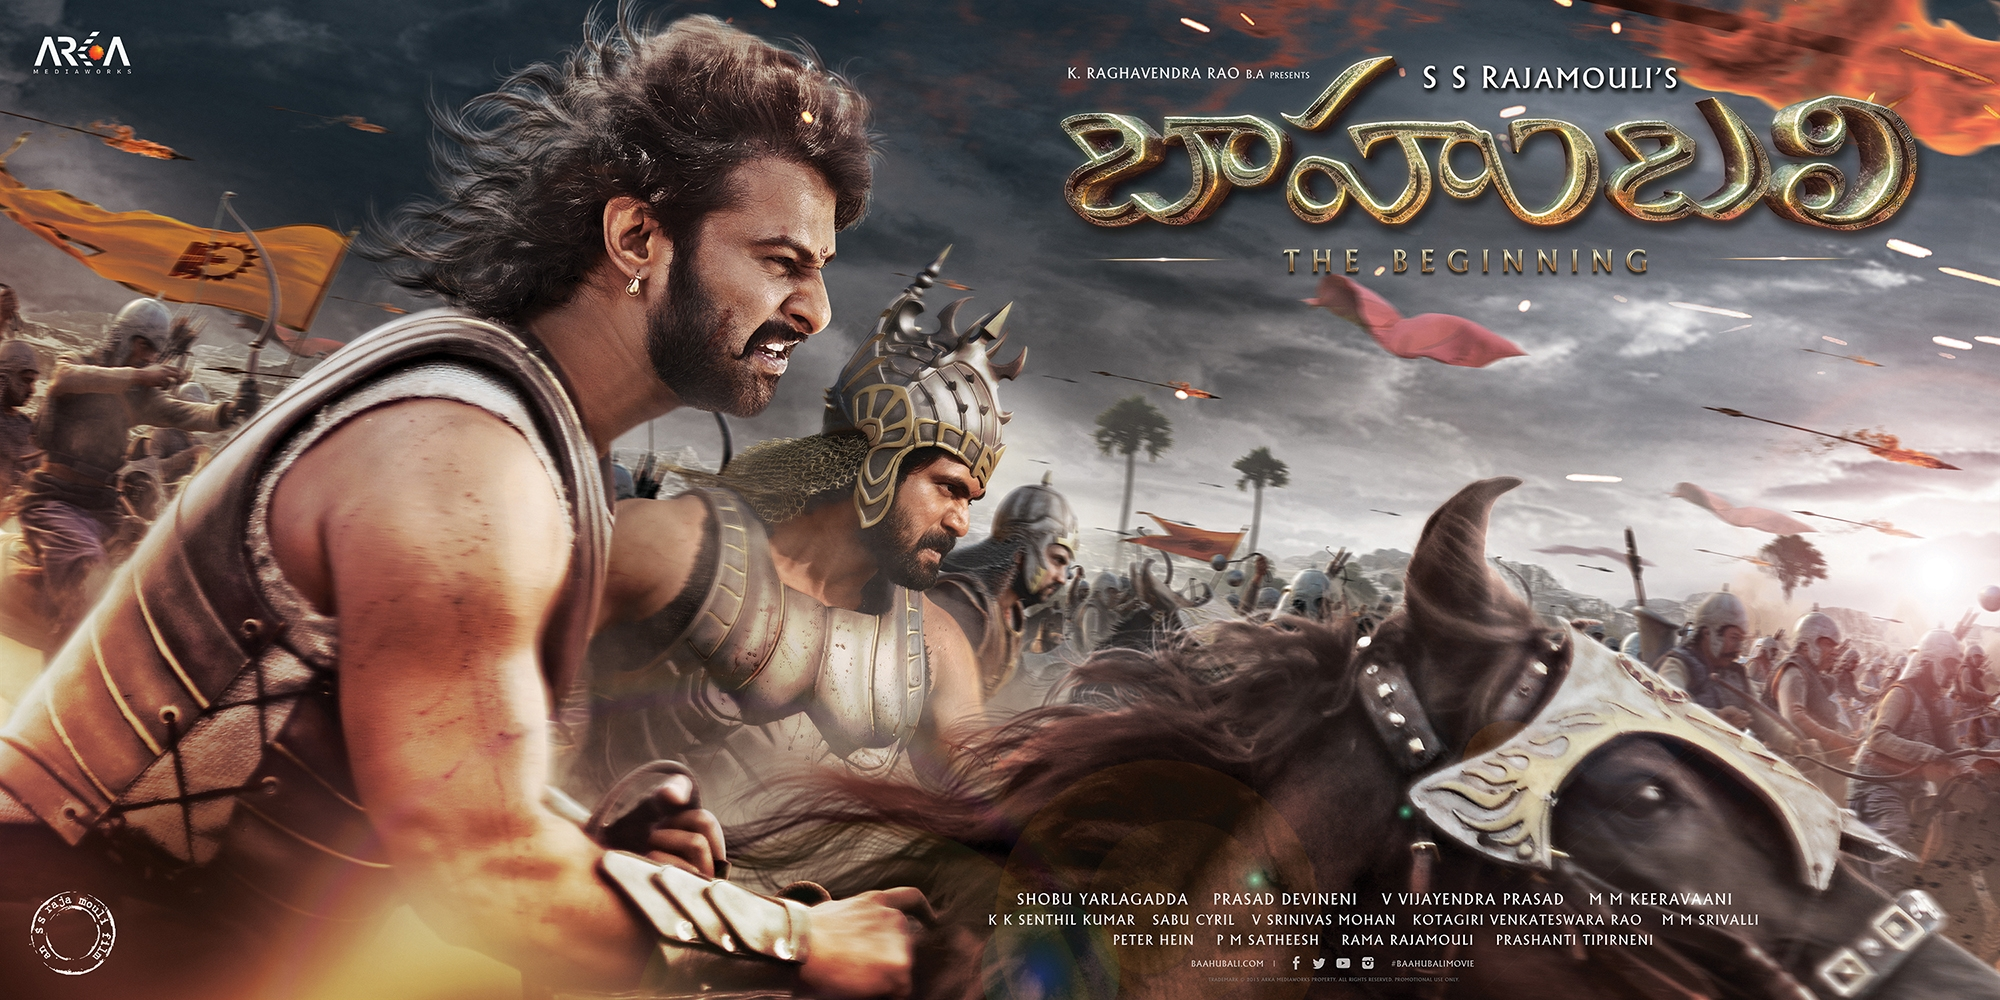 Hyderabad: Stills from Telugu film `Baahubali`. (Photo: IANS)